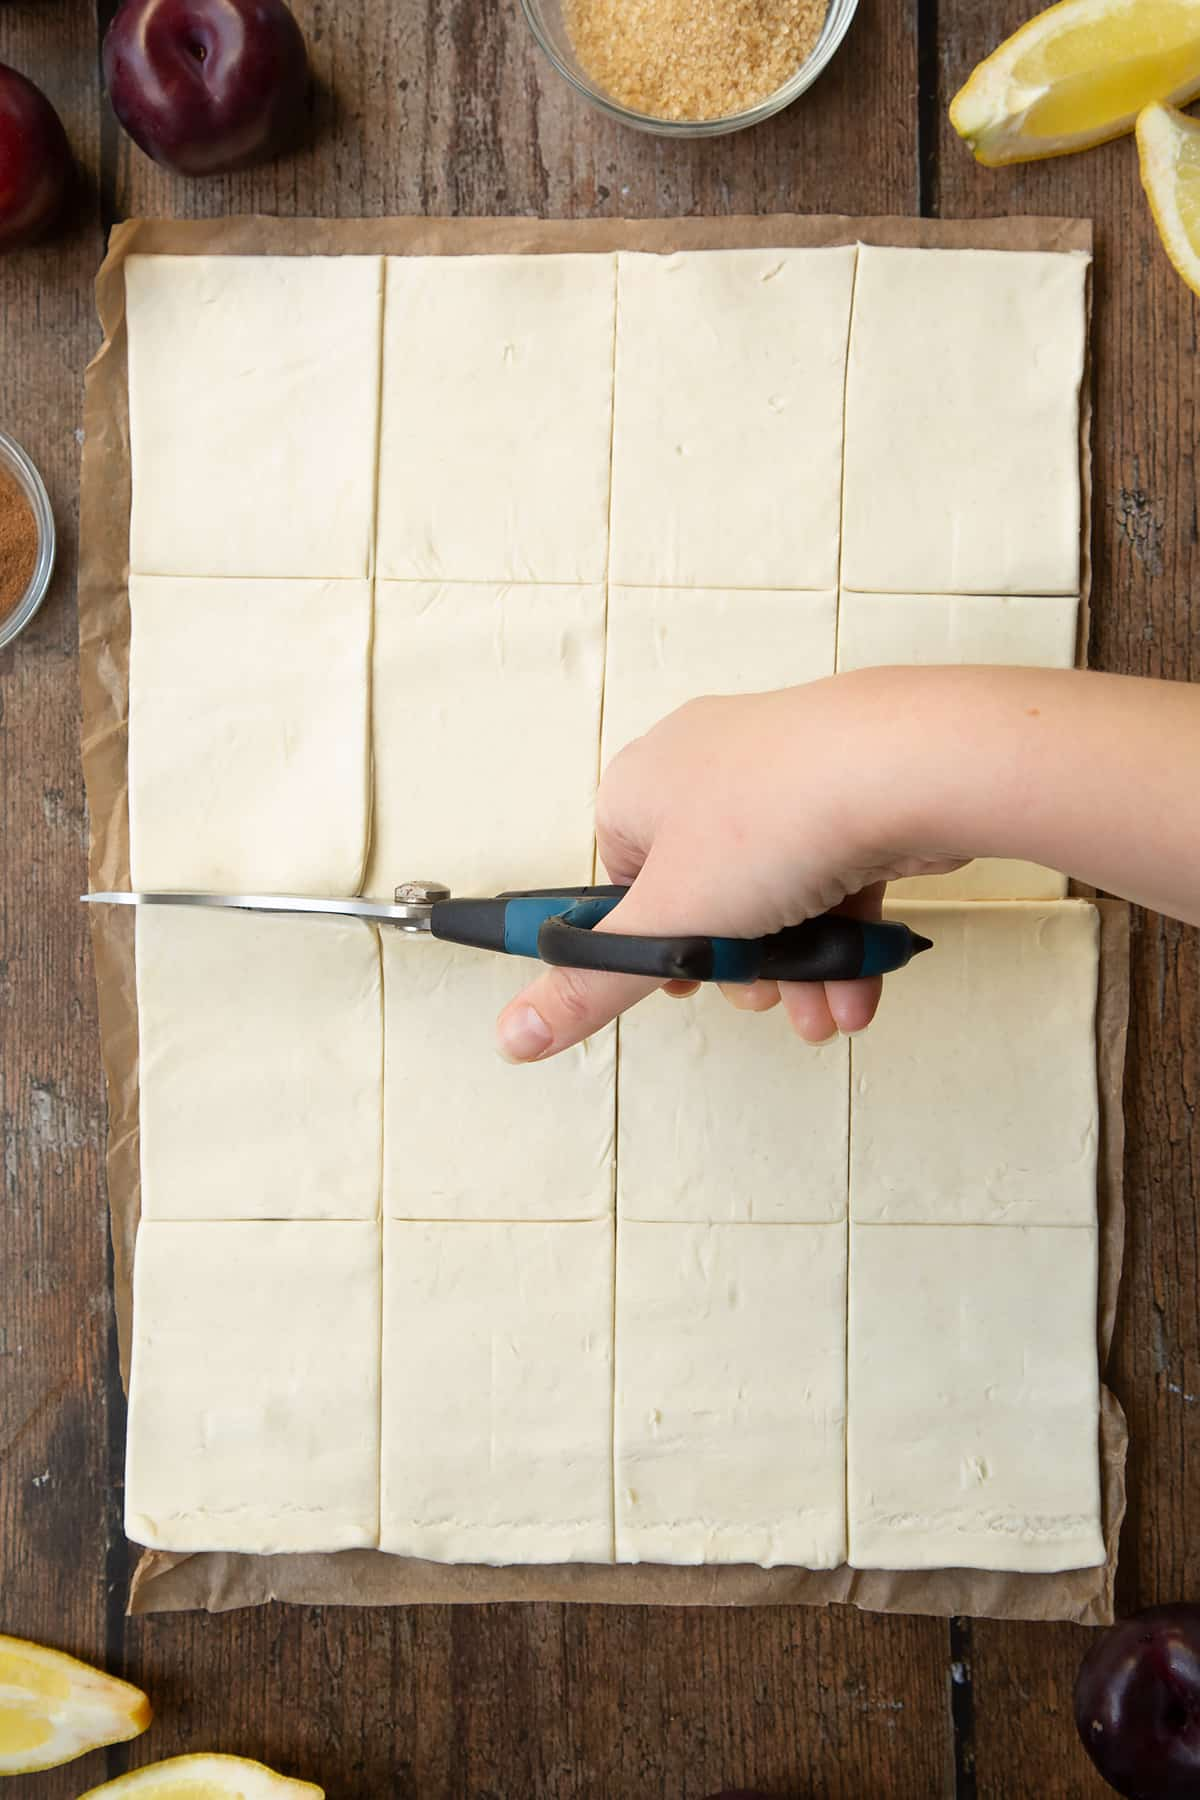 A puff pastry sheet cut into 16 pieces. Scissors are cutting the sheet in half. Ingredients to make a plum pastry recipe surround the pastry.